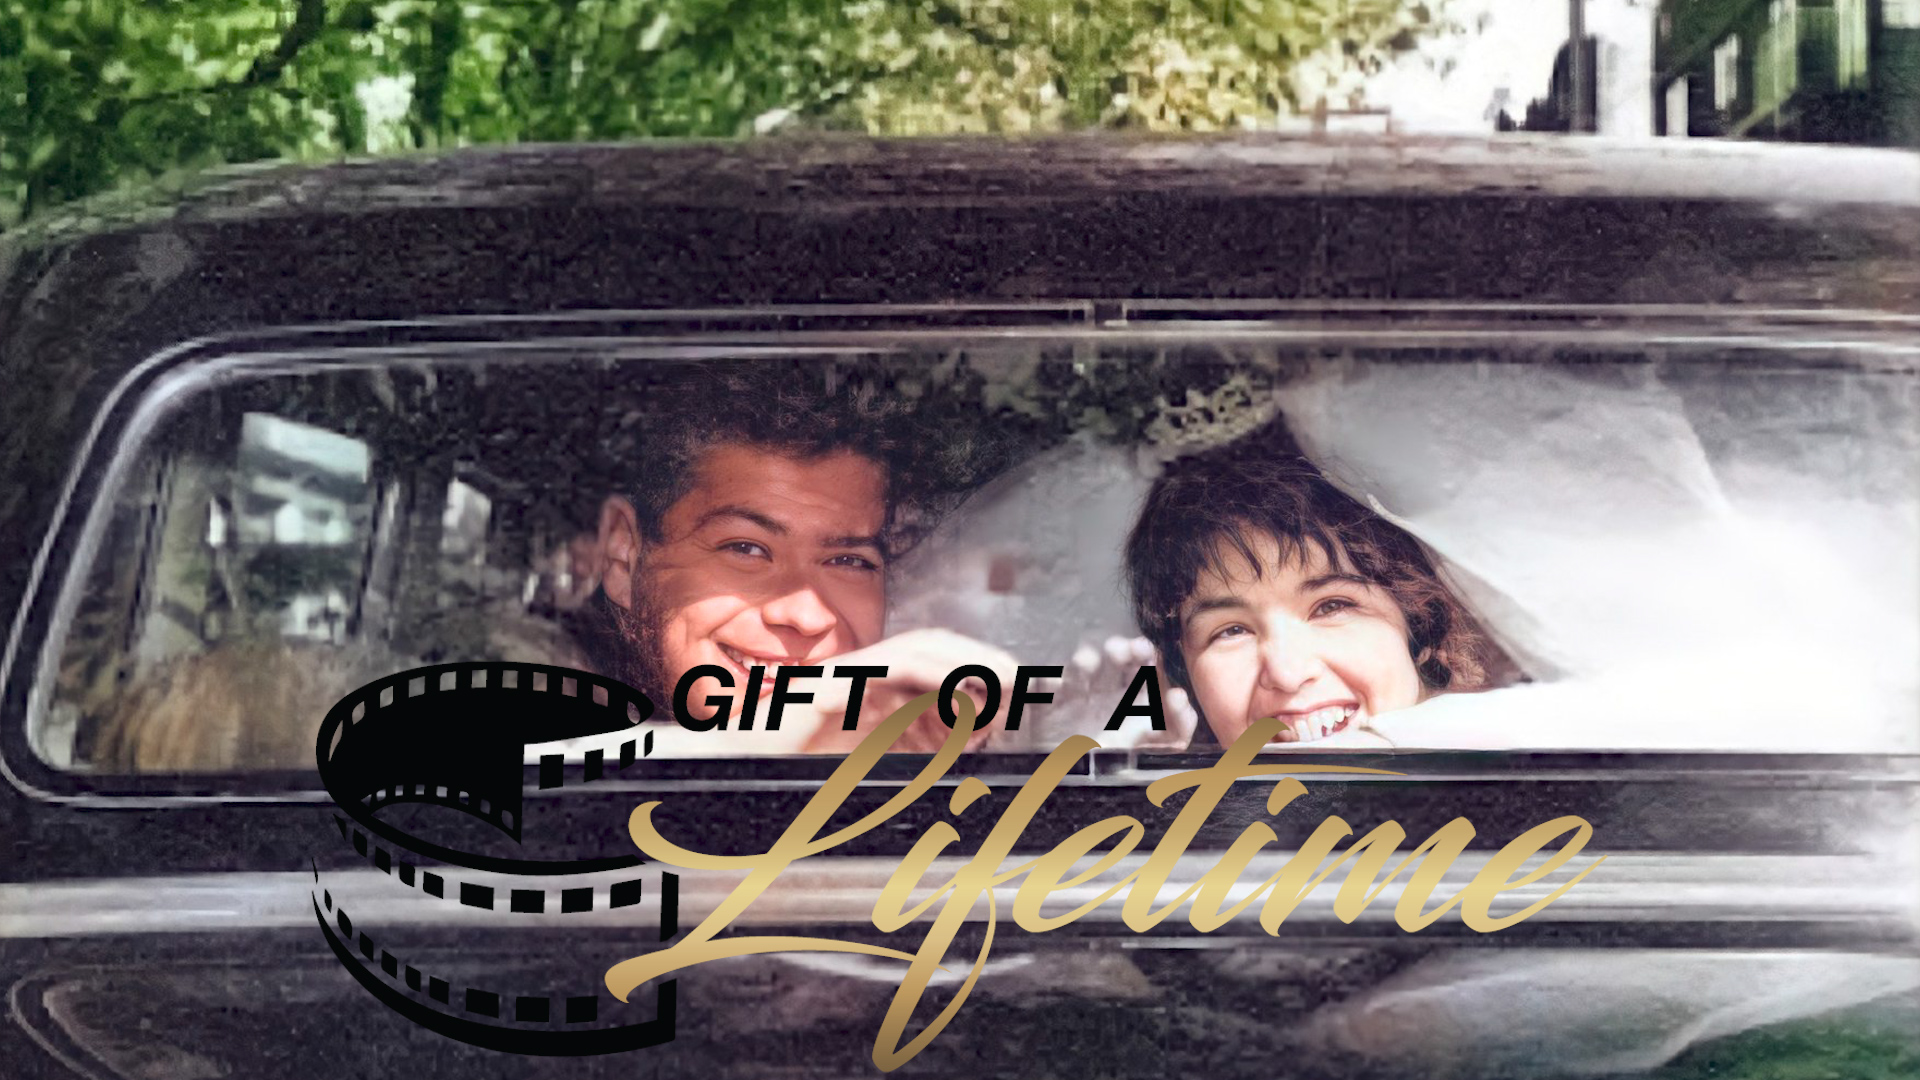 GIFT OF A LIFETIME - JOHN & MAUREEN MURRAY - FULL DOCUMENTARY